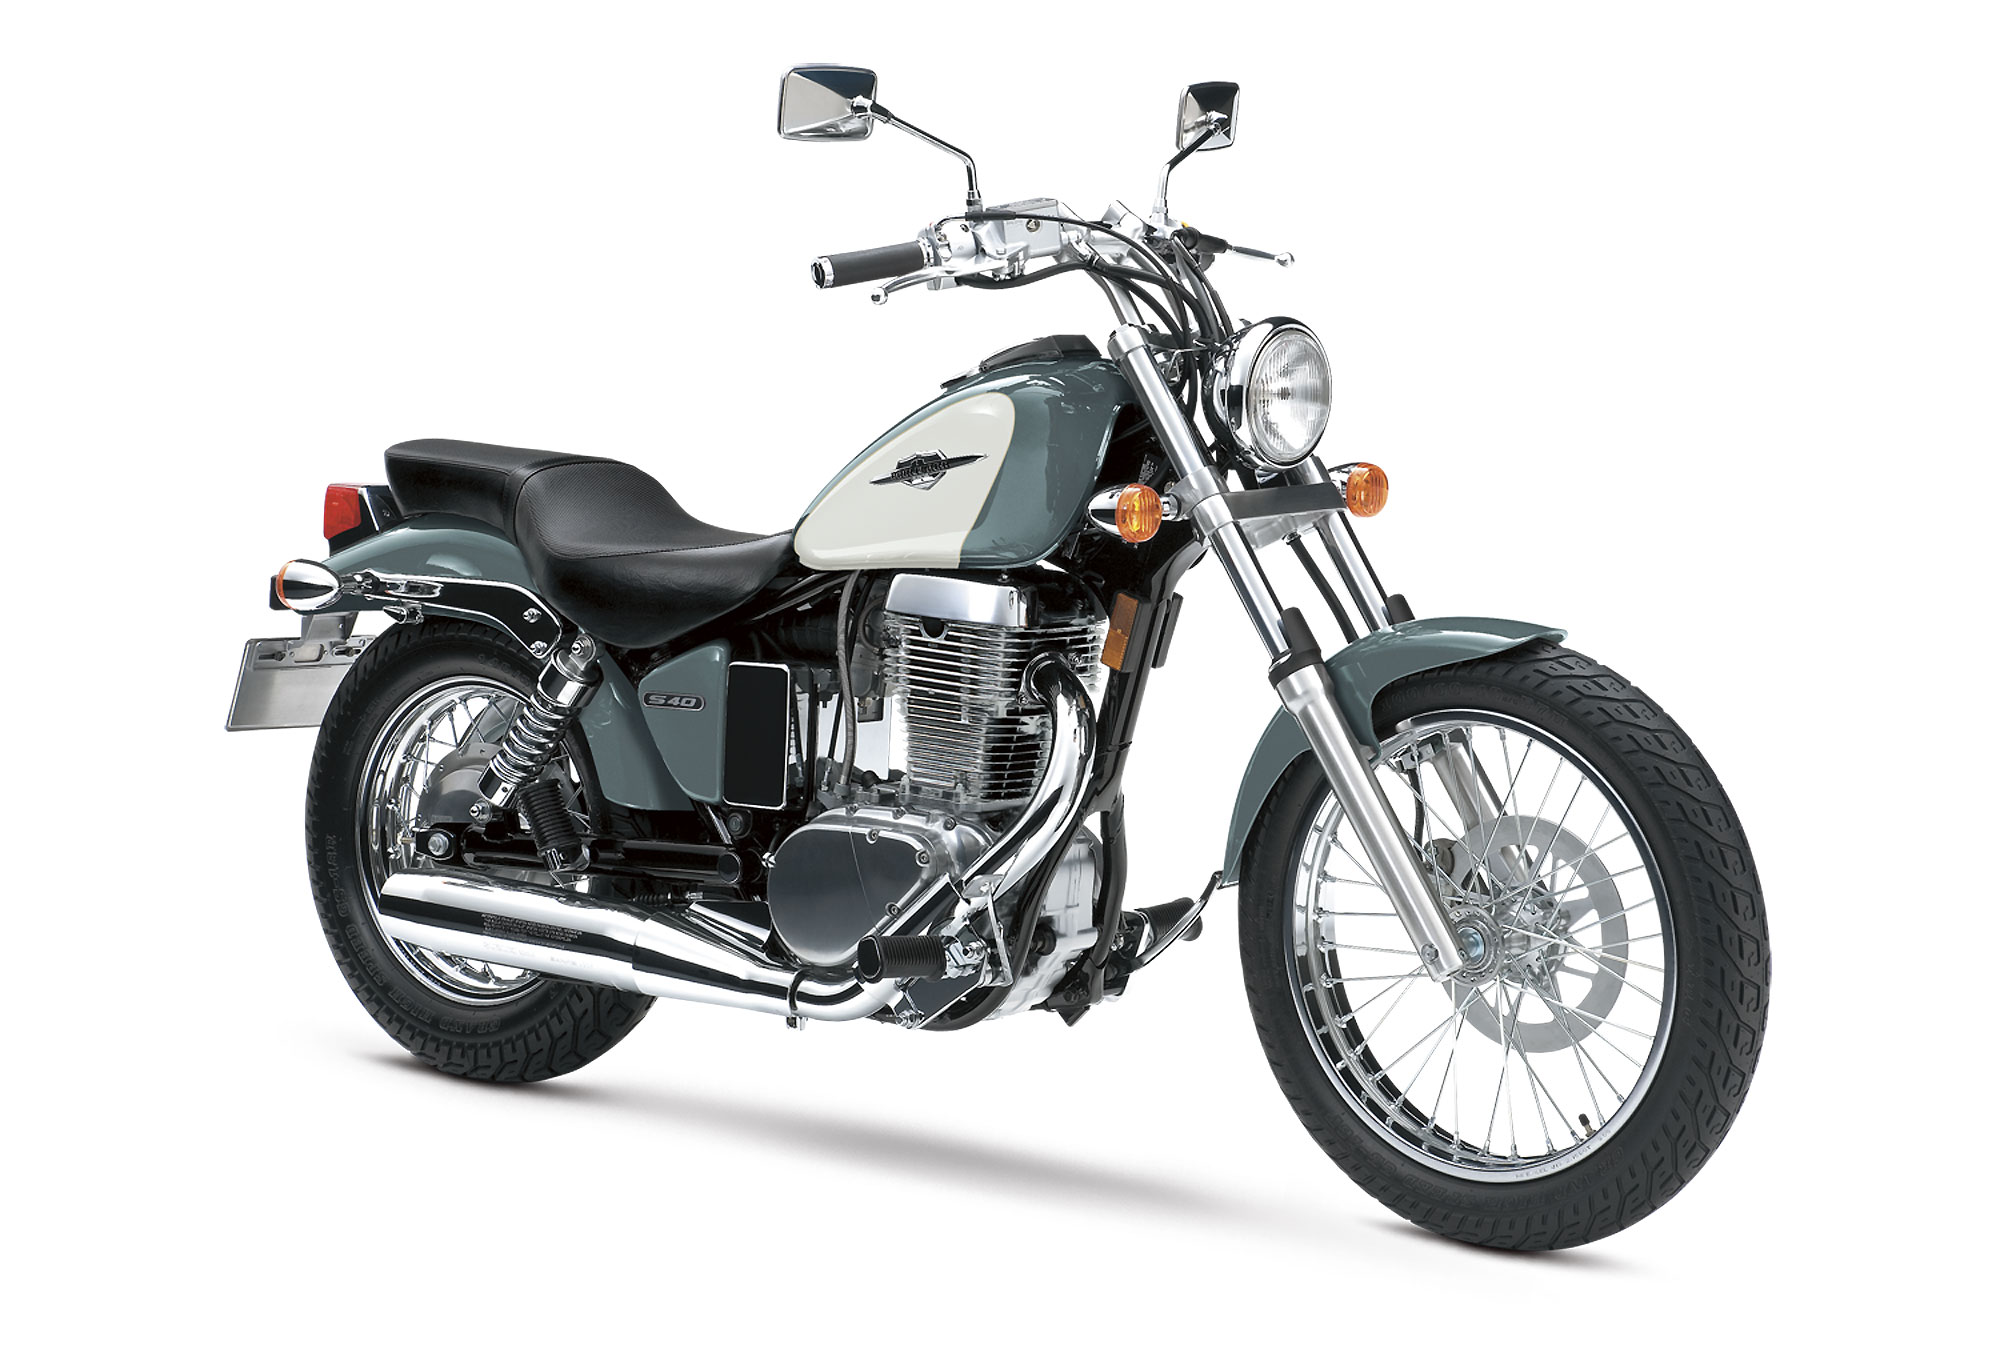 2013 Suzuki Boulevard S40 | Top Speed. »